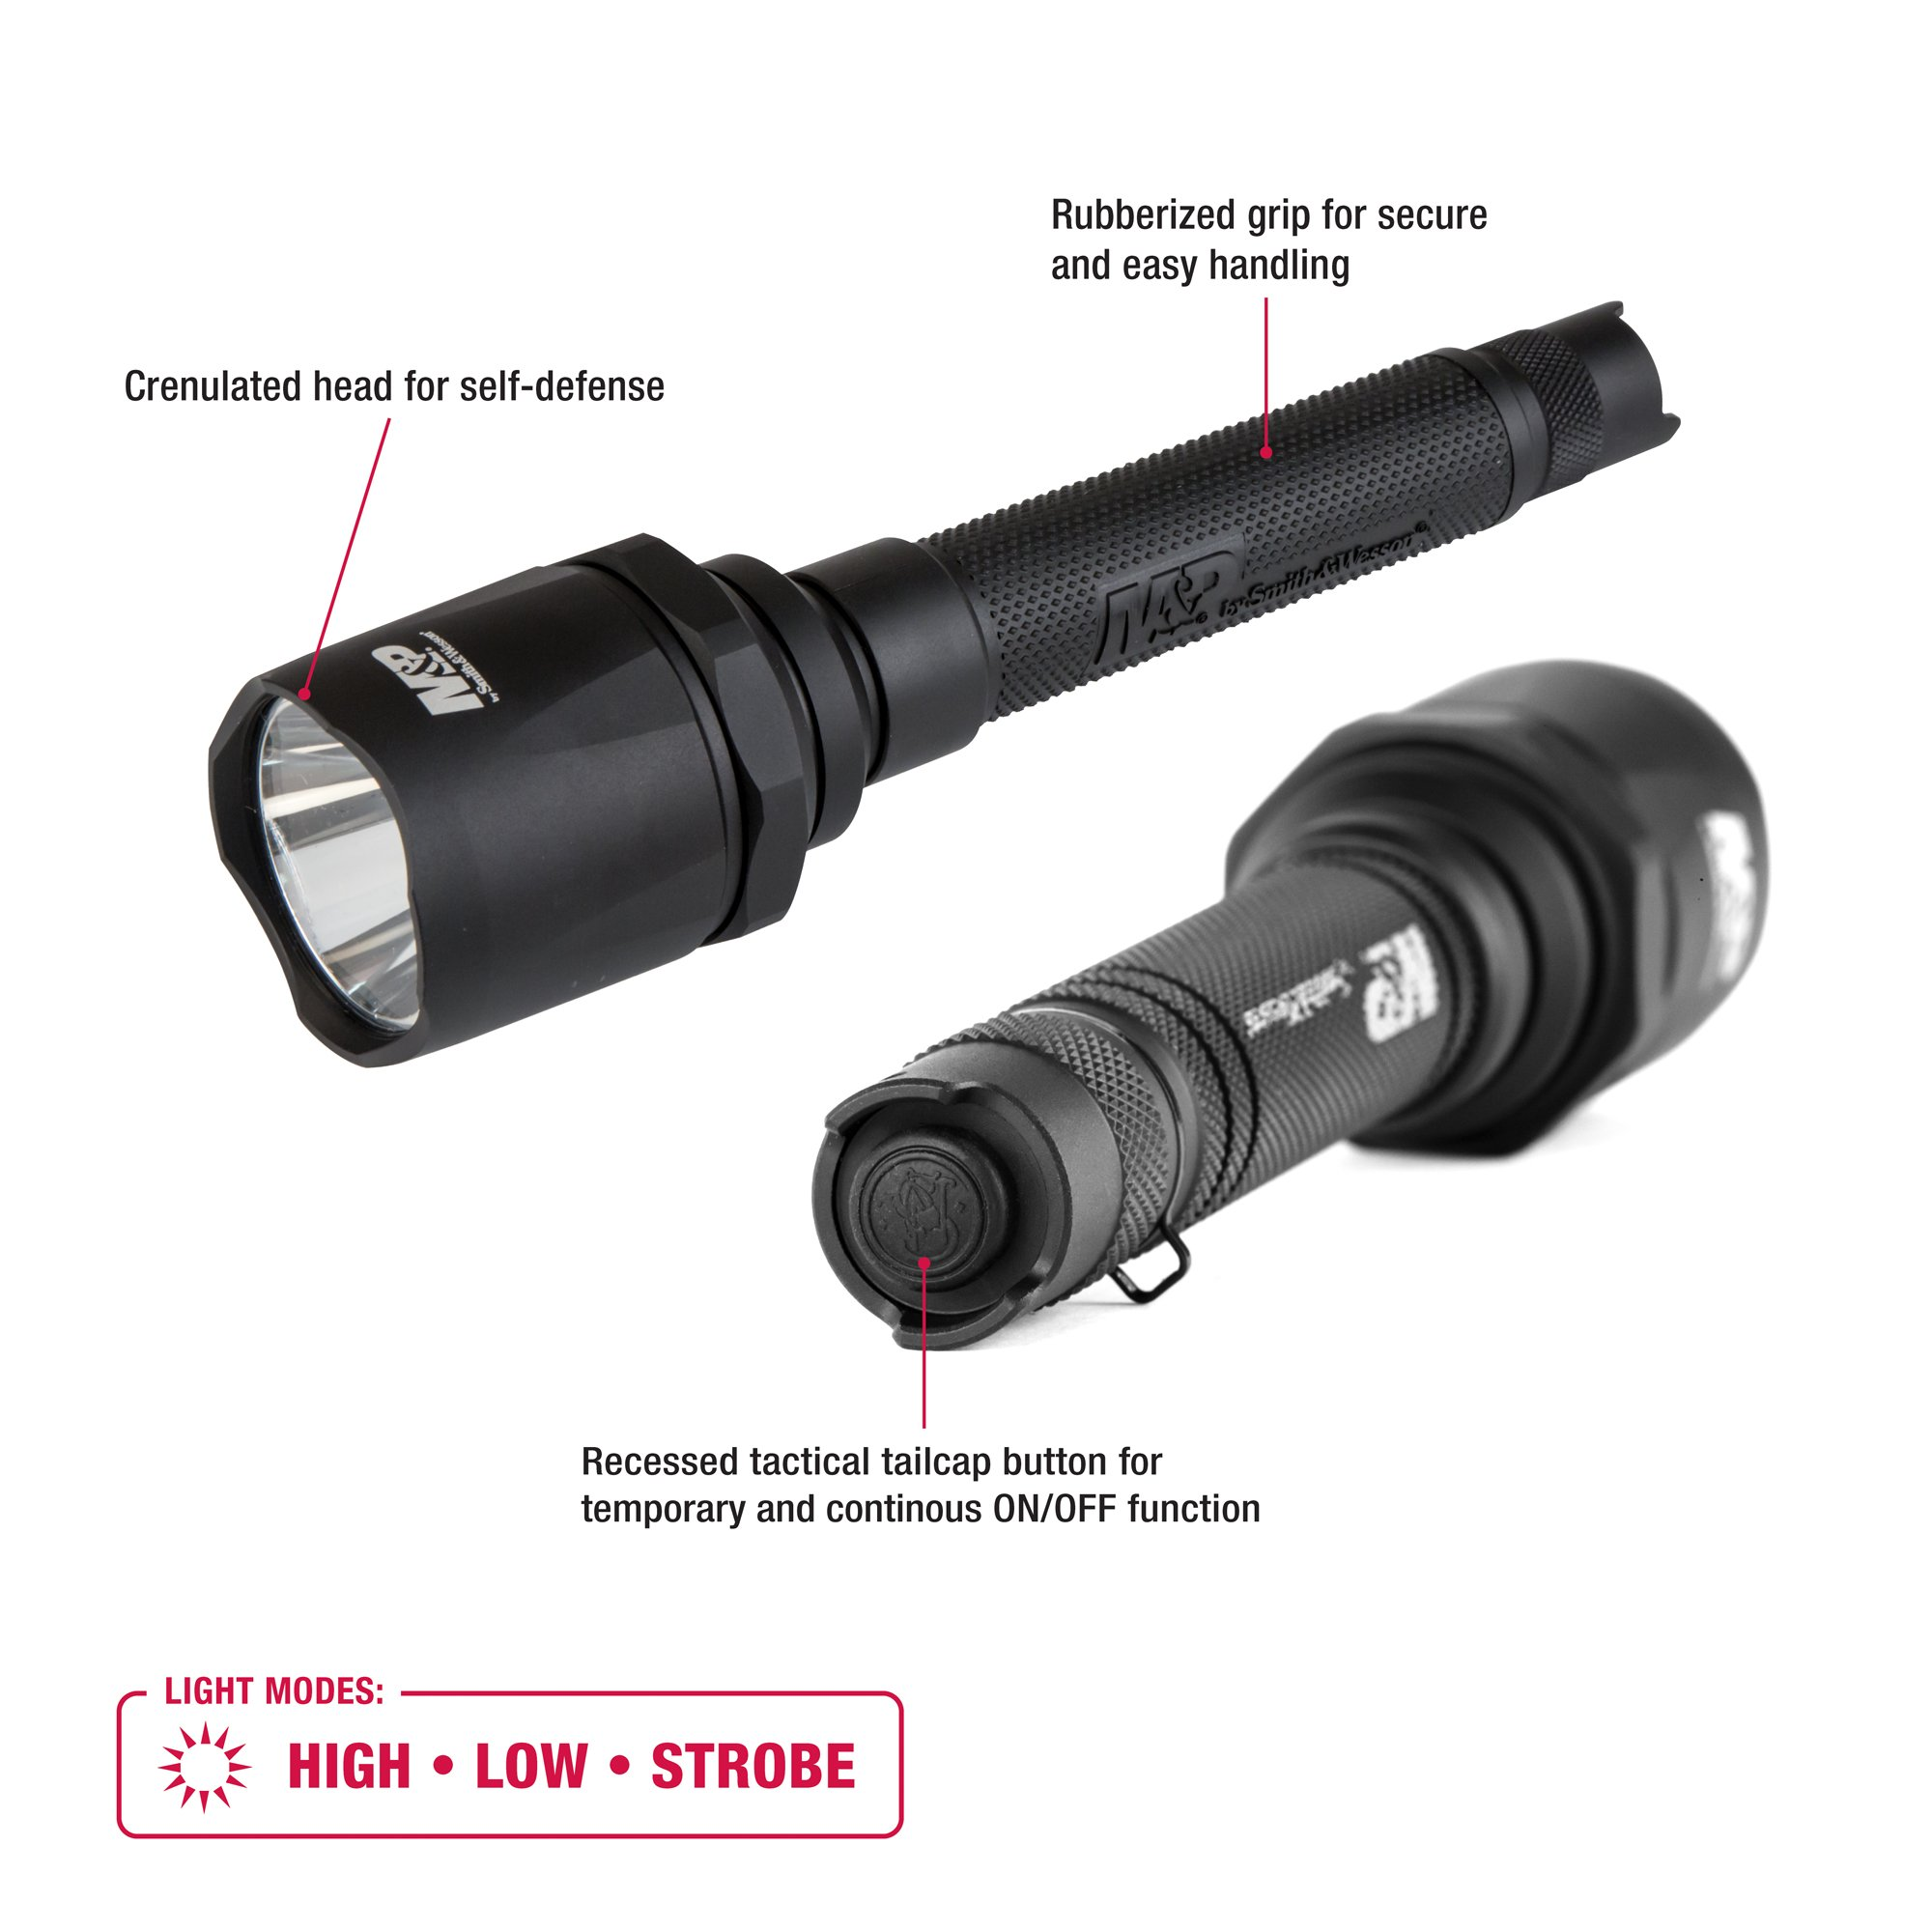 M&P by Smith & Wesson Delta Force FS-10 CREE Flashlight 2100 Lumens 3 Mode Waterproof Memory Retention Tactical Hunting Camping Hiking Fishing Self-Defense Full Size by Smith & Wesson (Image #2)